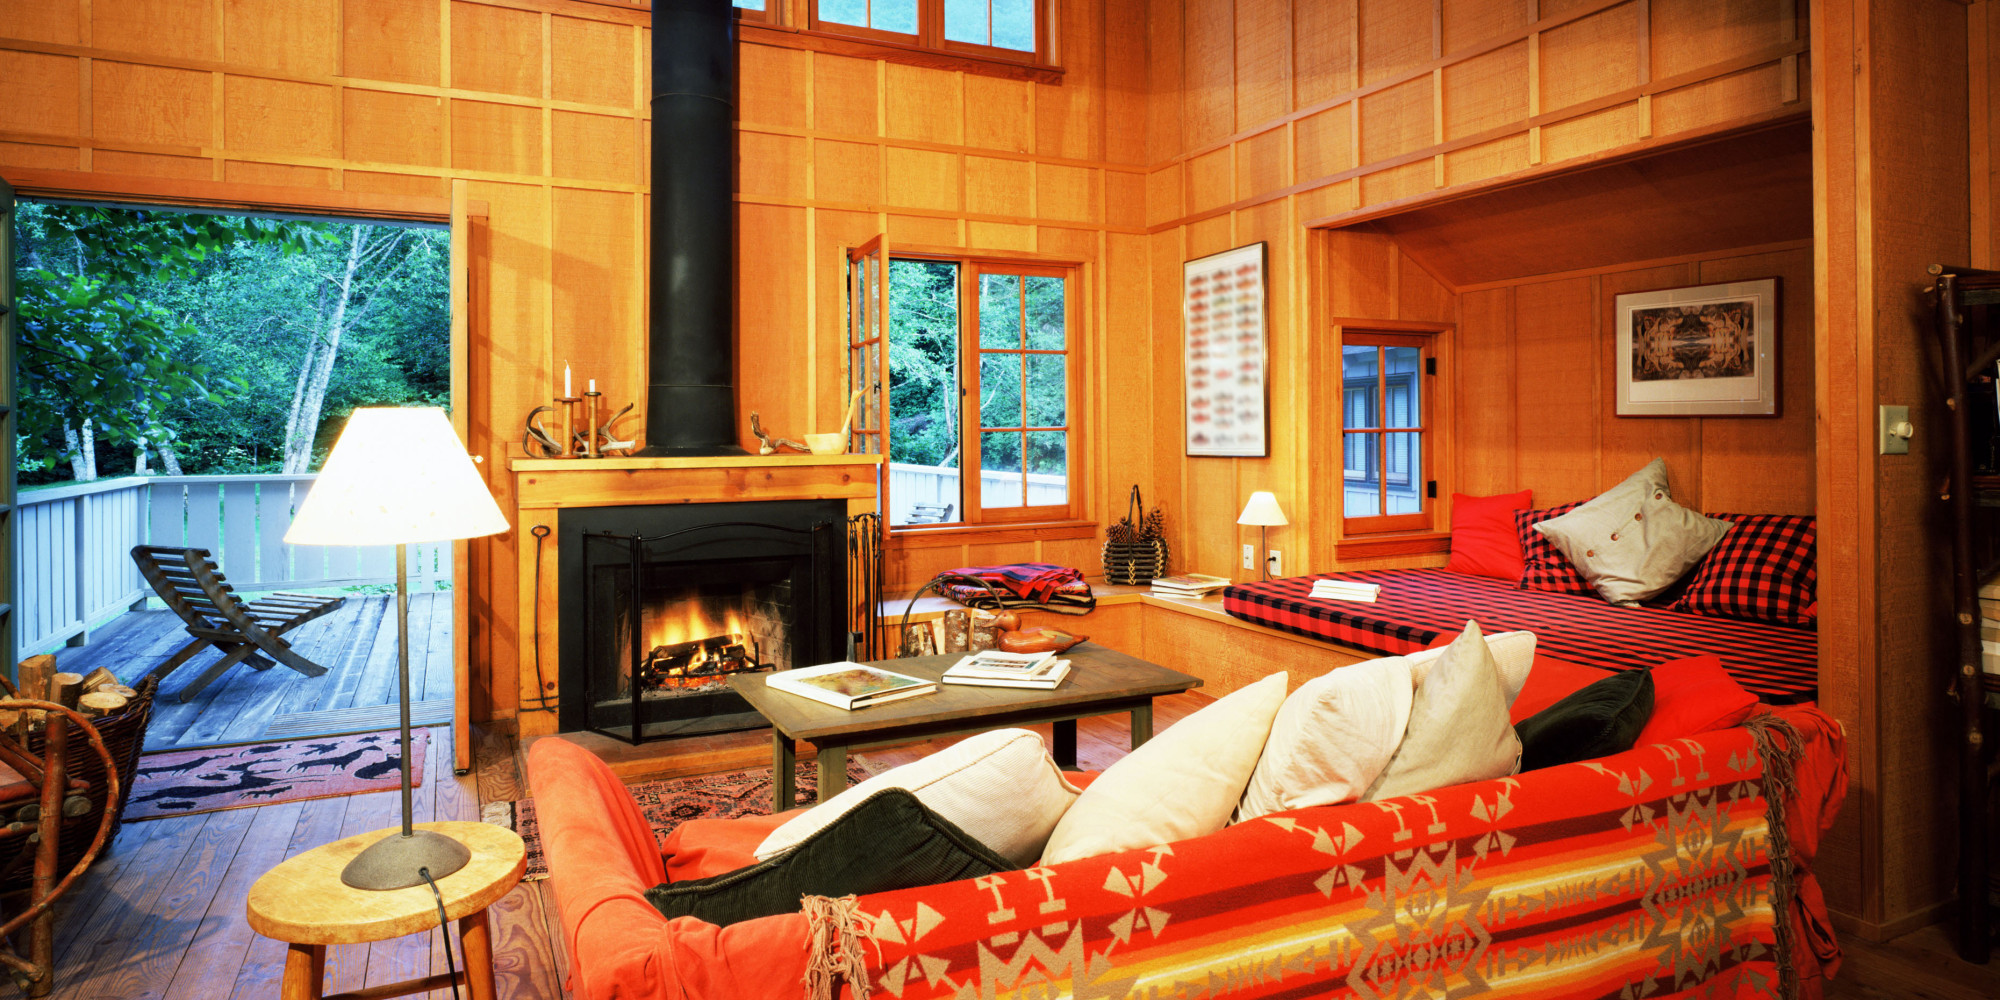 7 cozy fireplaces to warm you up this winter huffpost